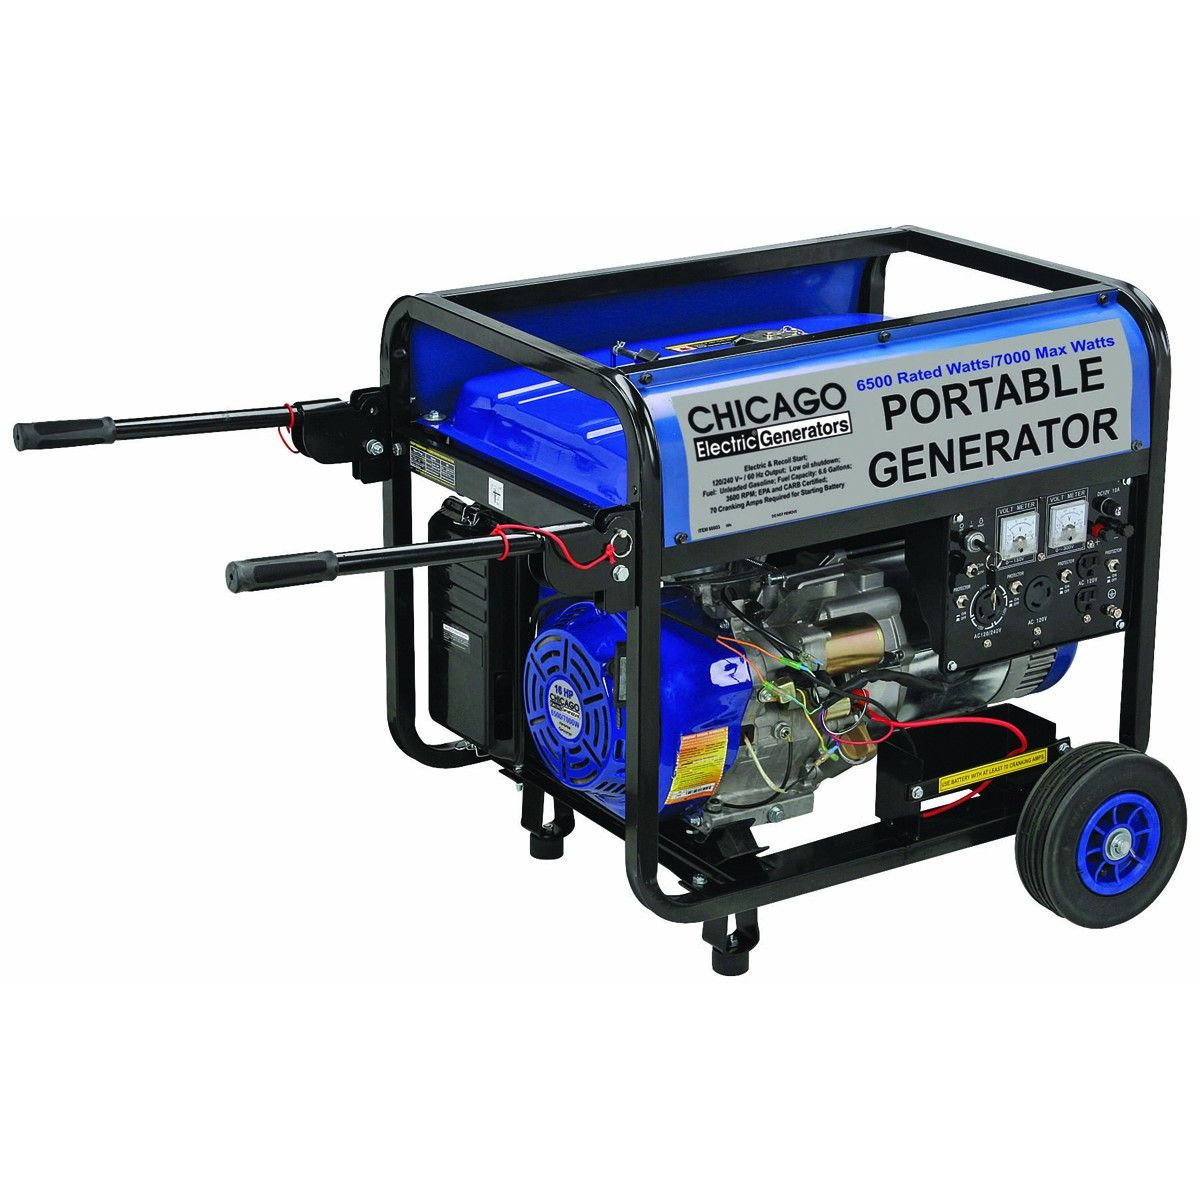 hight resolution of chicago electric generators 66603 16 hp 6500 rated watts 7000 max watts portable generator carb